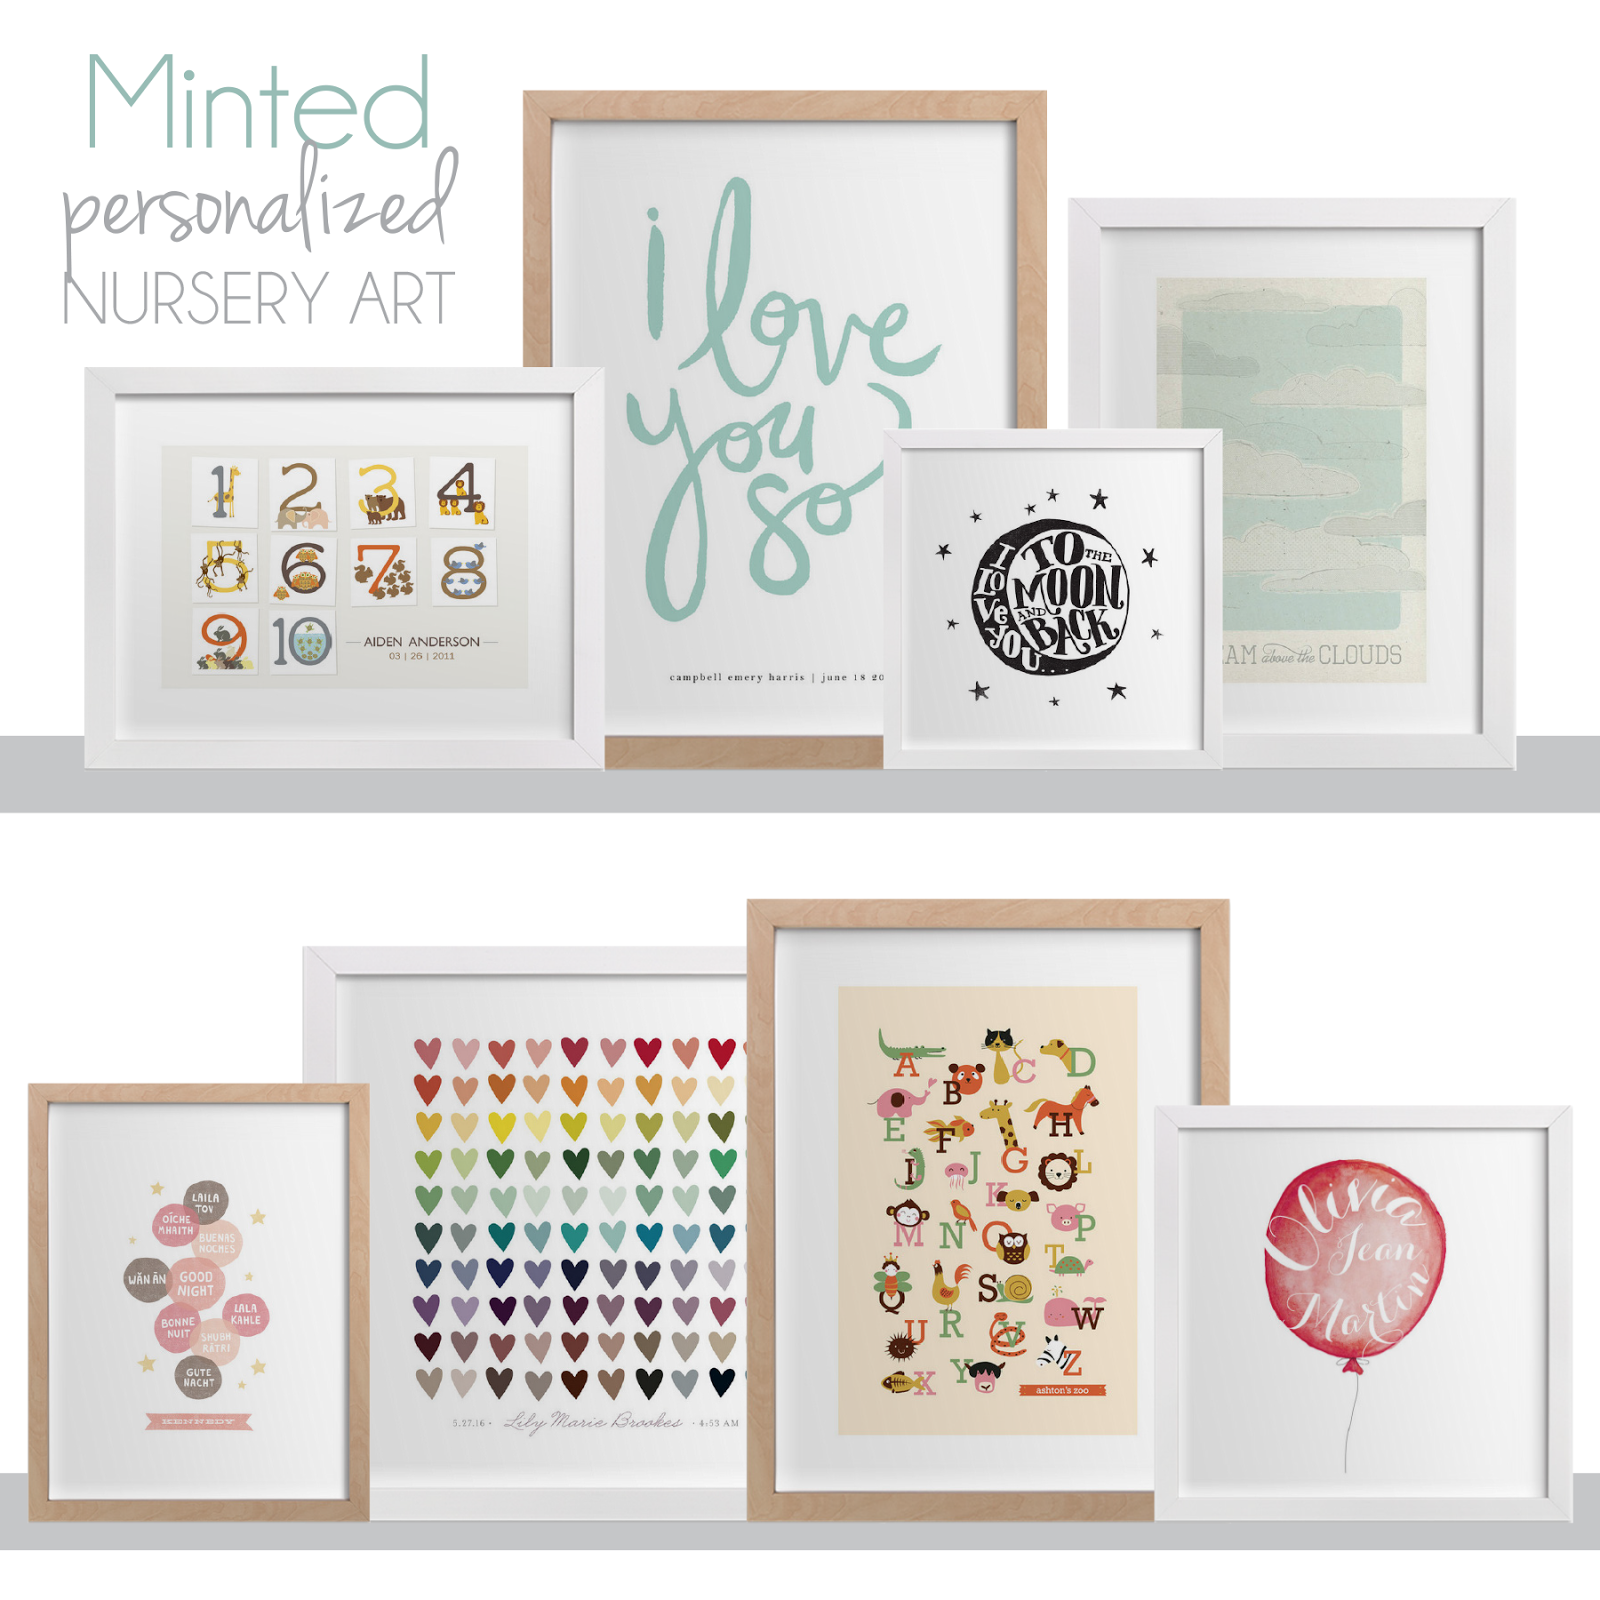 Personalized Nursery Art From Minted